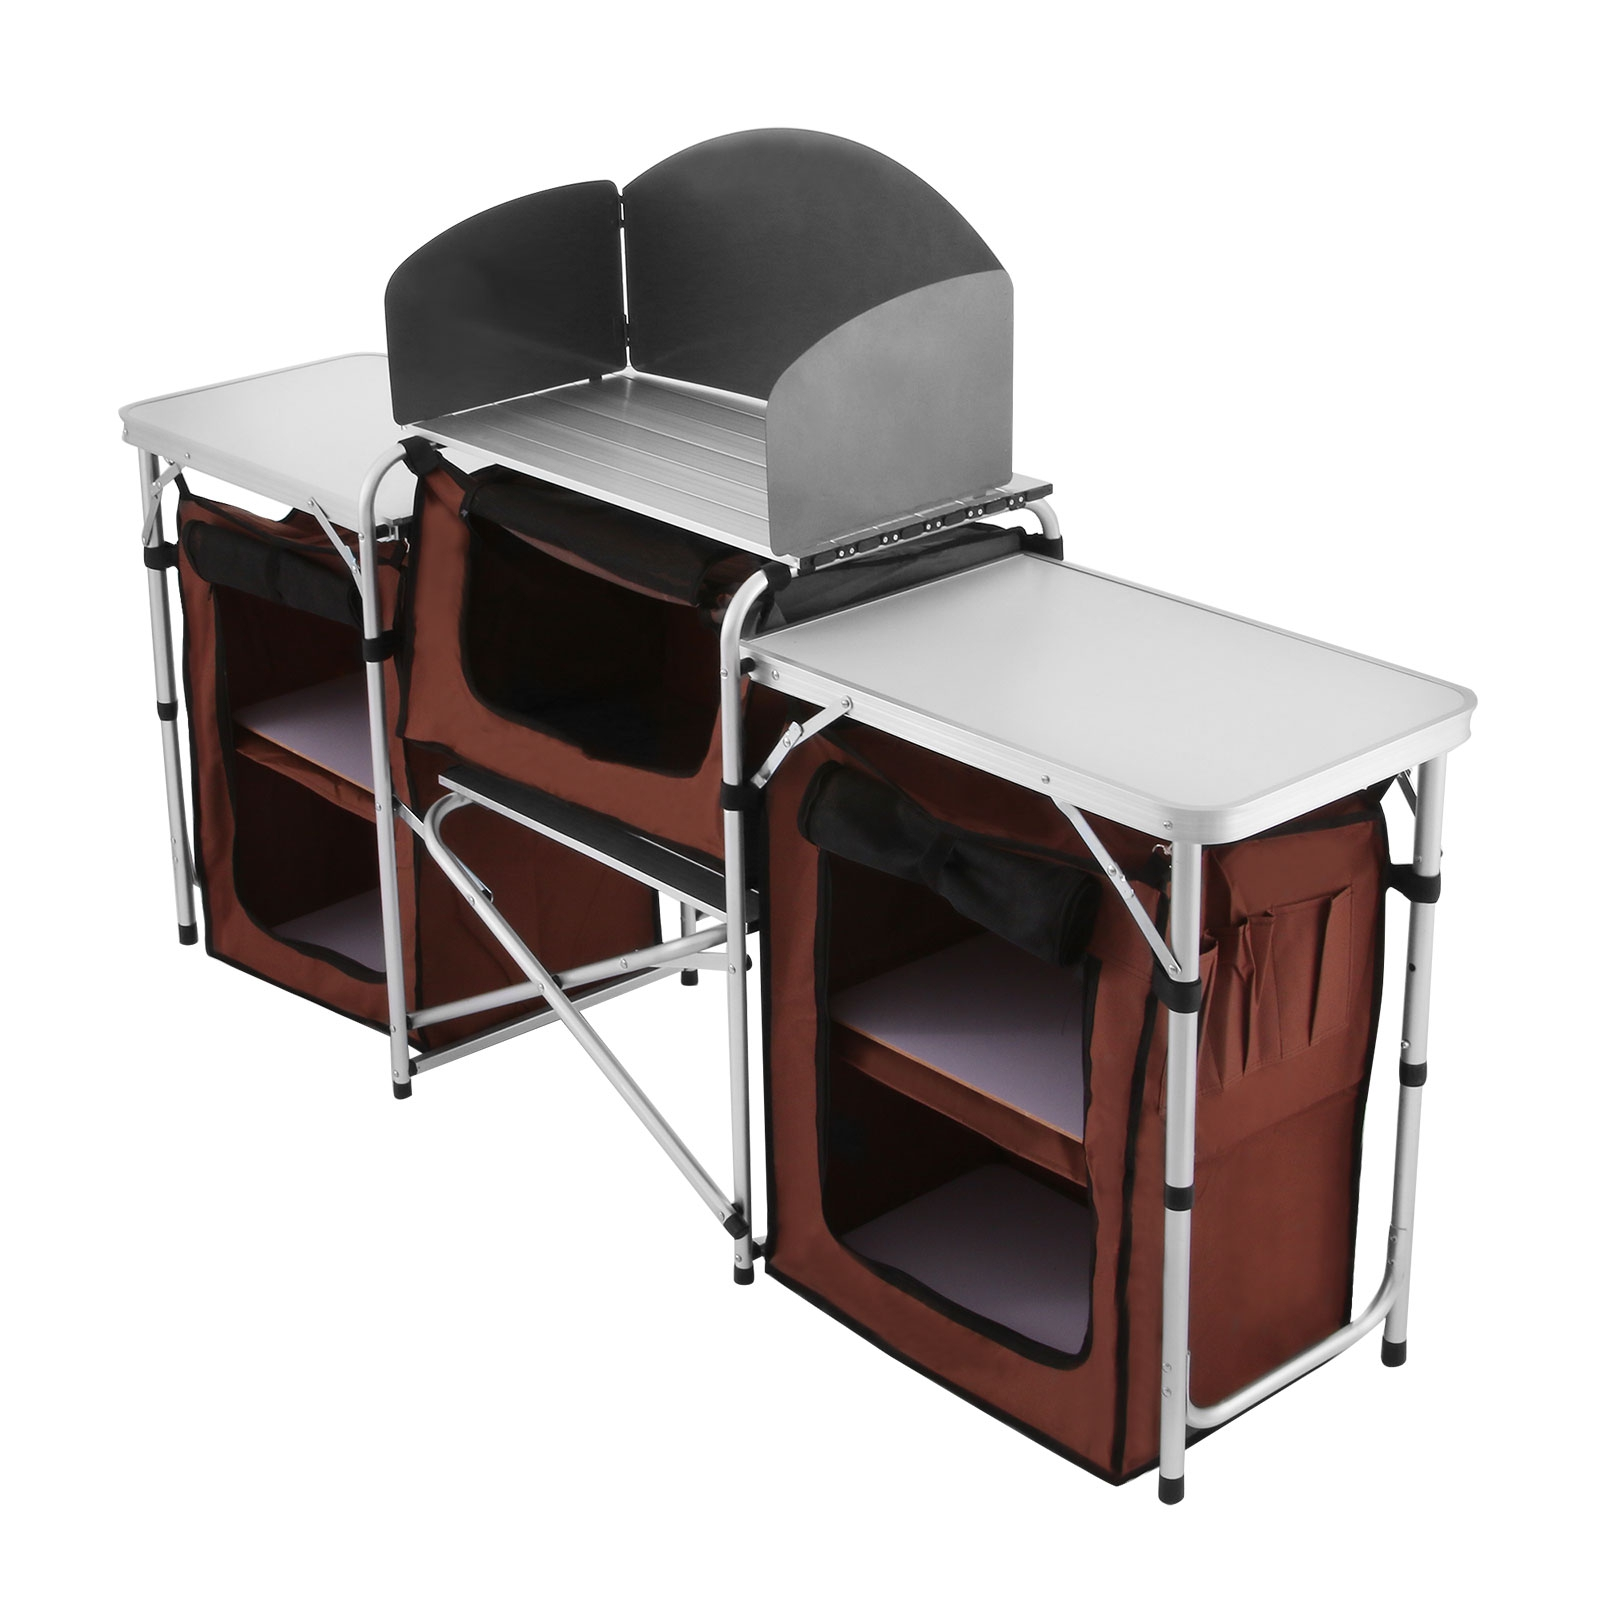 Camping kitchen cooking table food prep food storage adjustable folding 245496290737 ebay - Table retractable cuisine ...